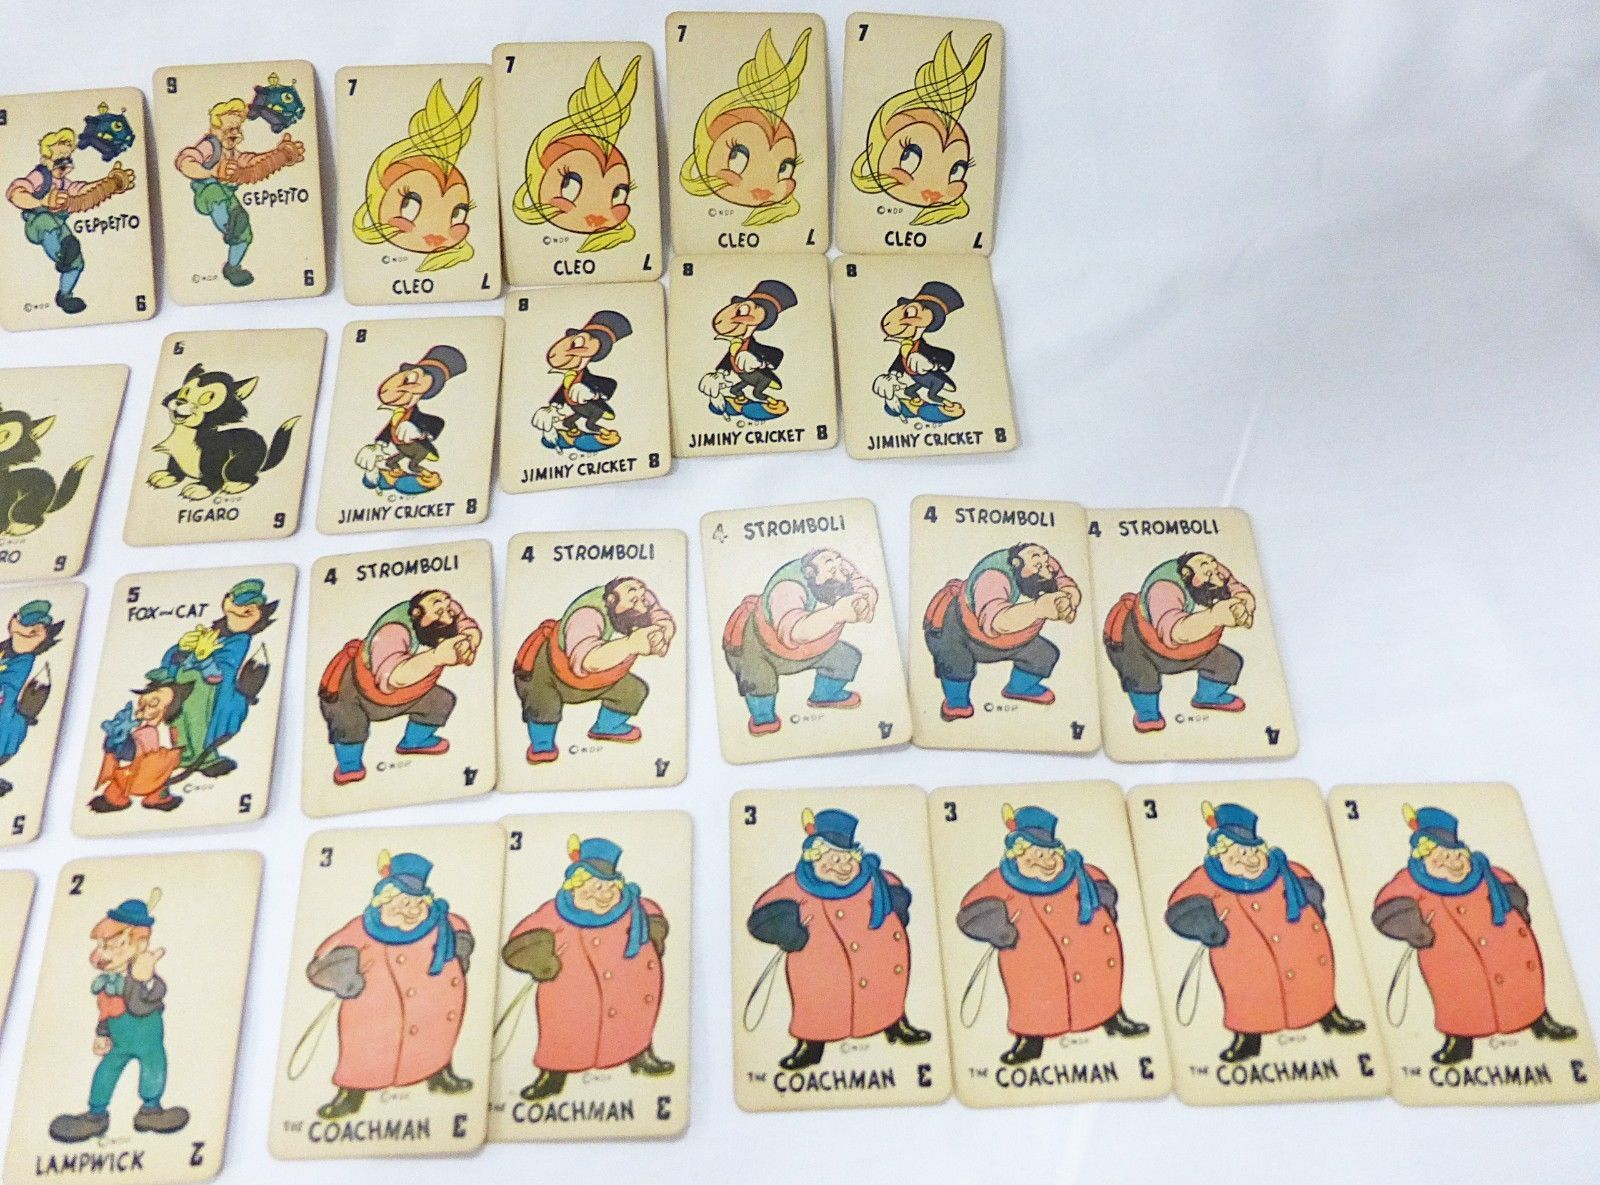 Vintage walt disney pinocchio 1946 game card 47 deck by russell MFG Co